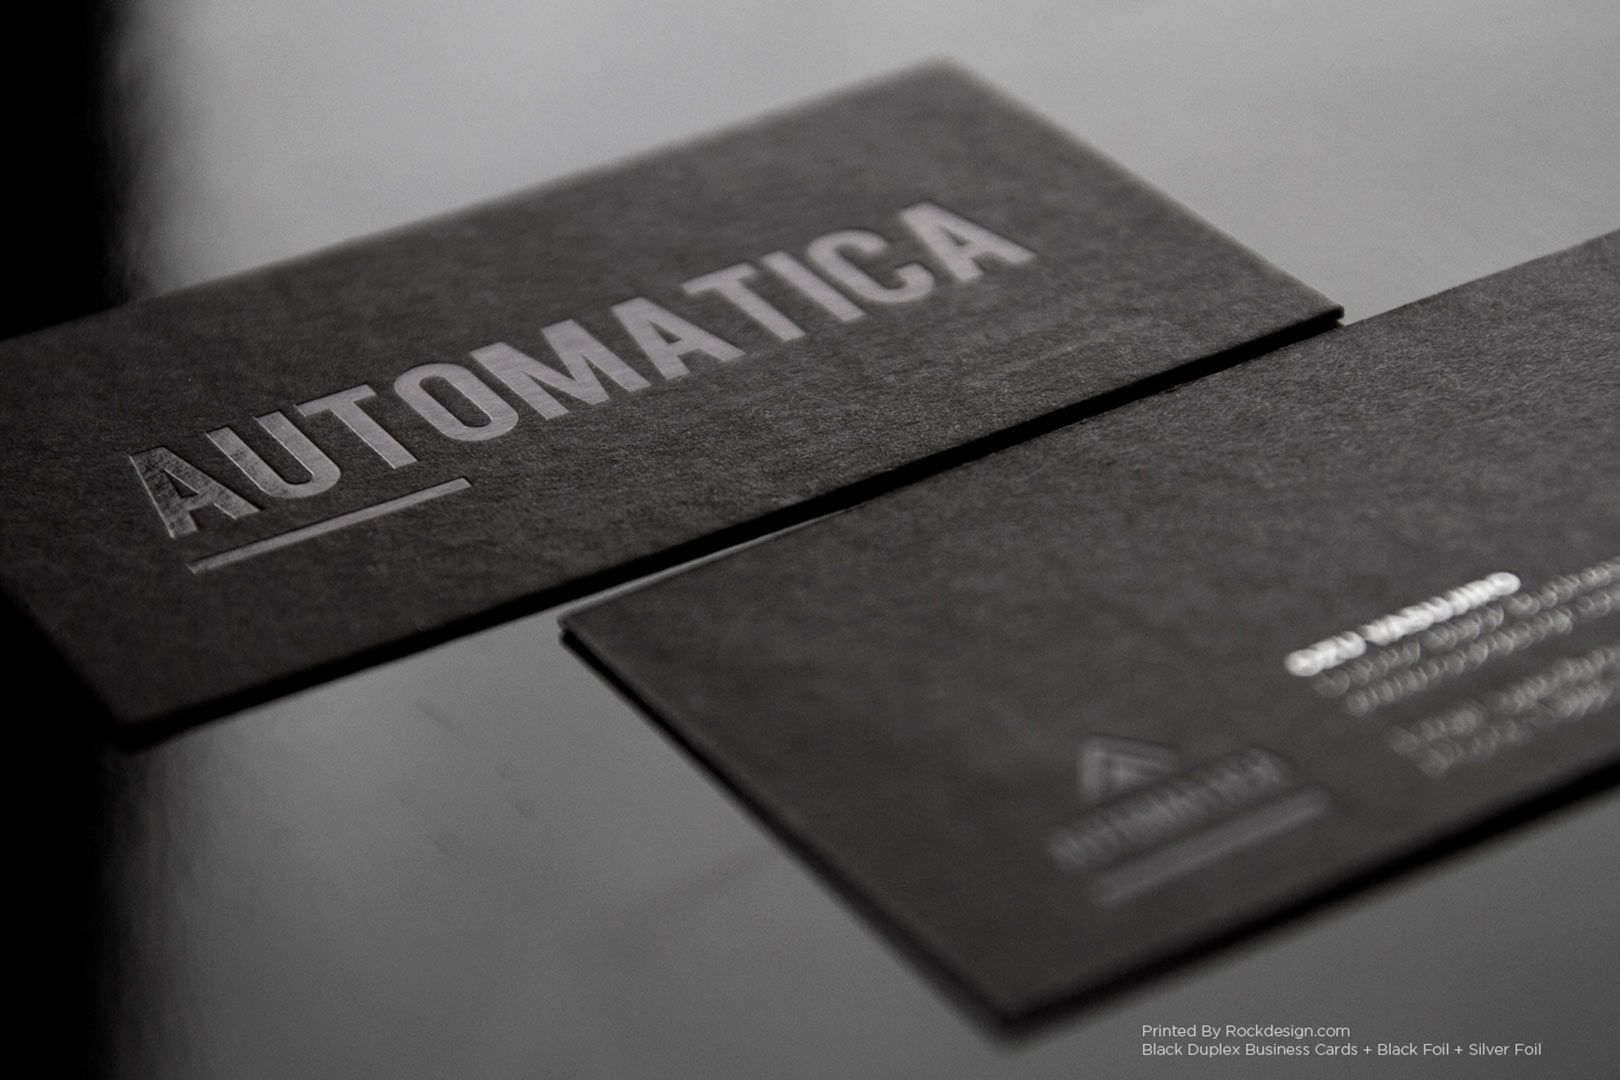 Minimalist business card template automatica rockdesign luxury free business card templates for rockdesign print customers order a professional business card template online choose from our wide selection of business fbccfo Gallery